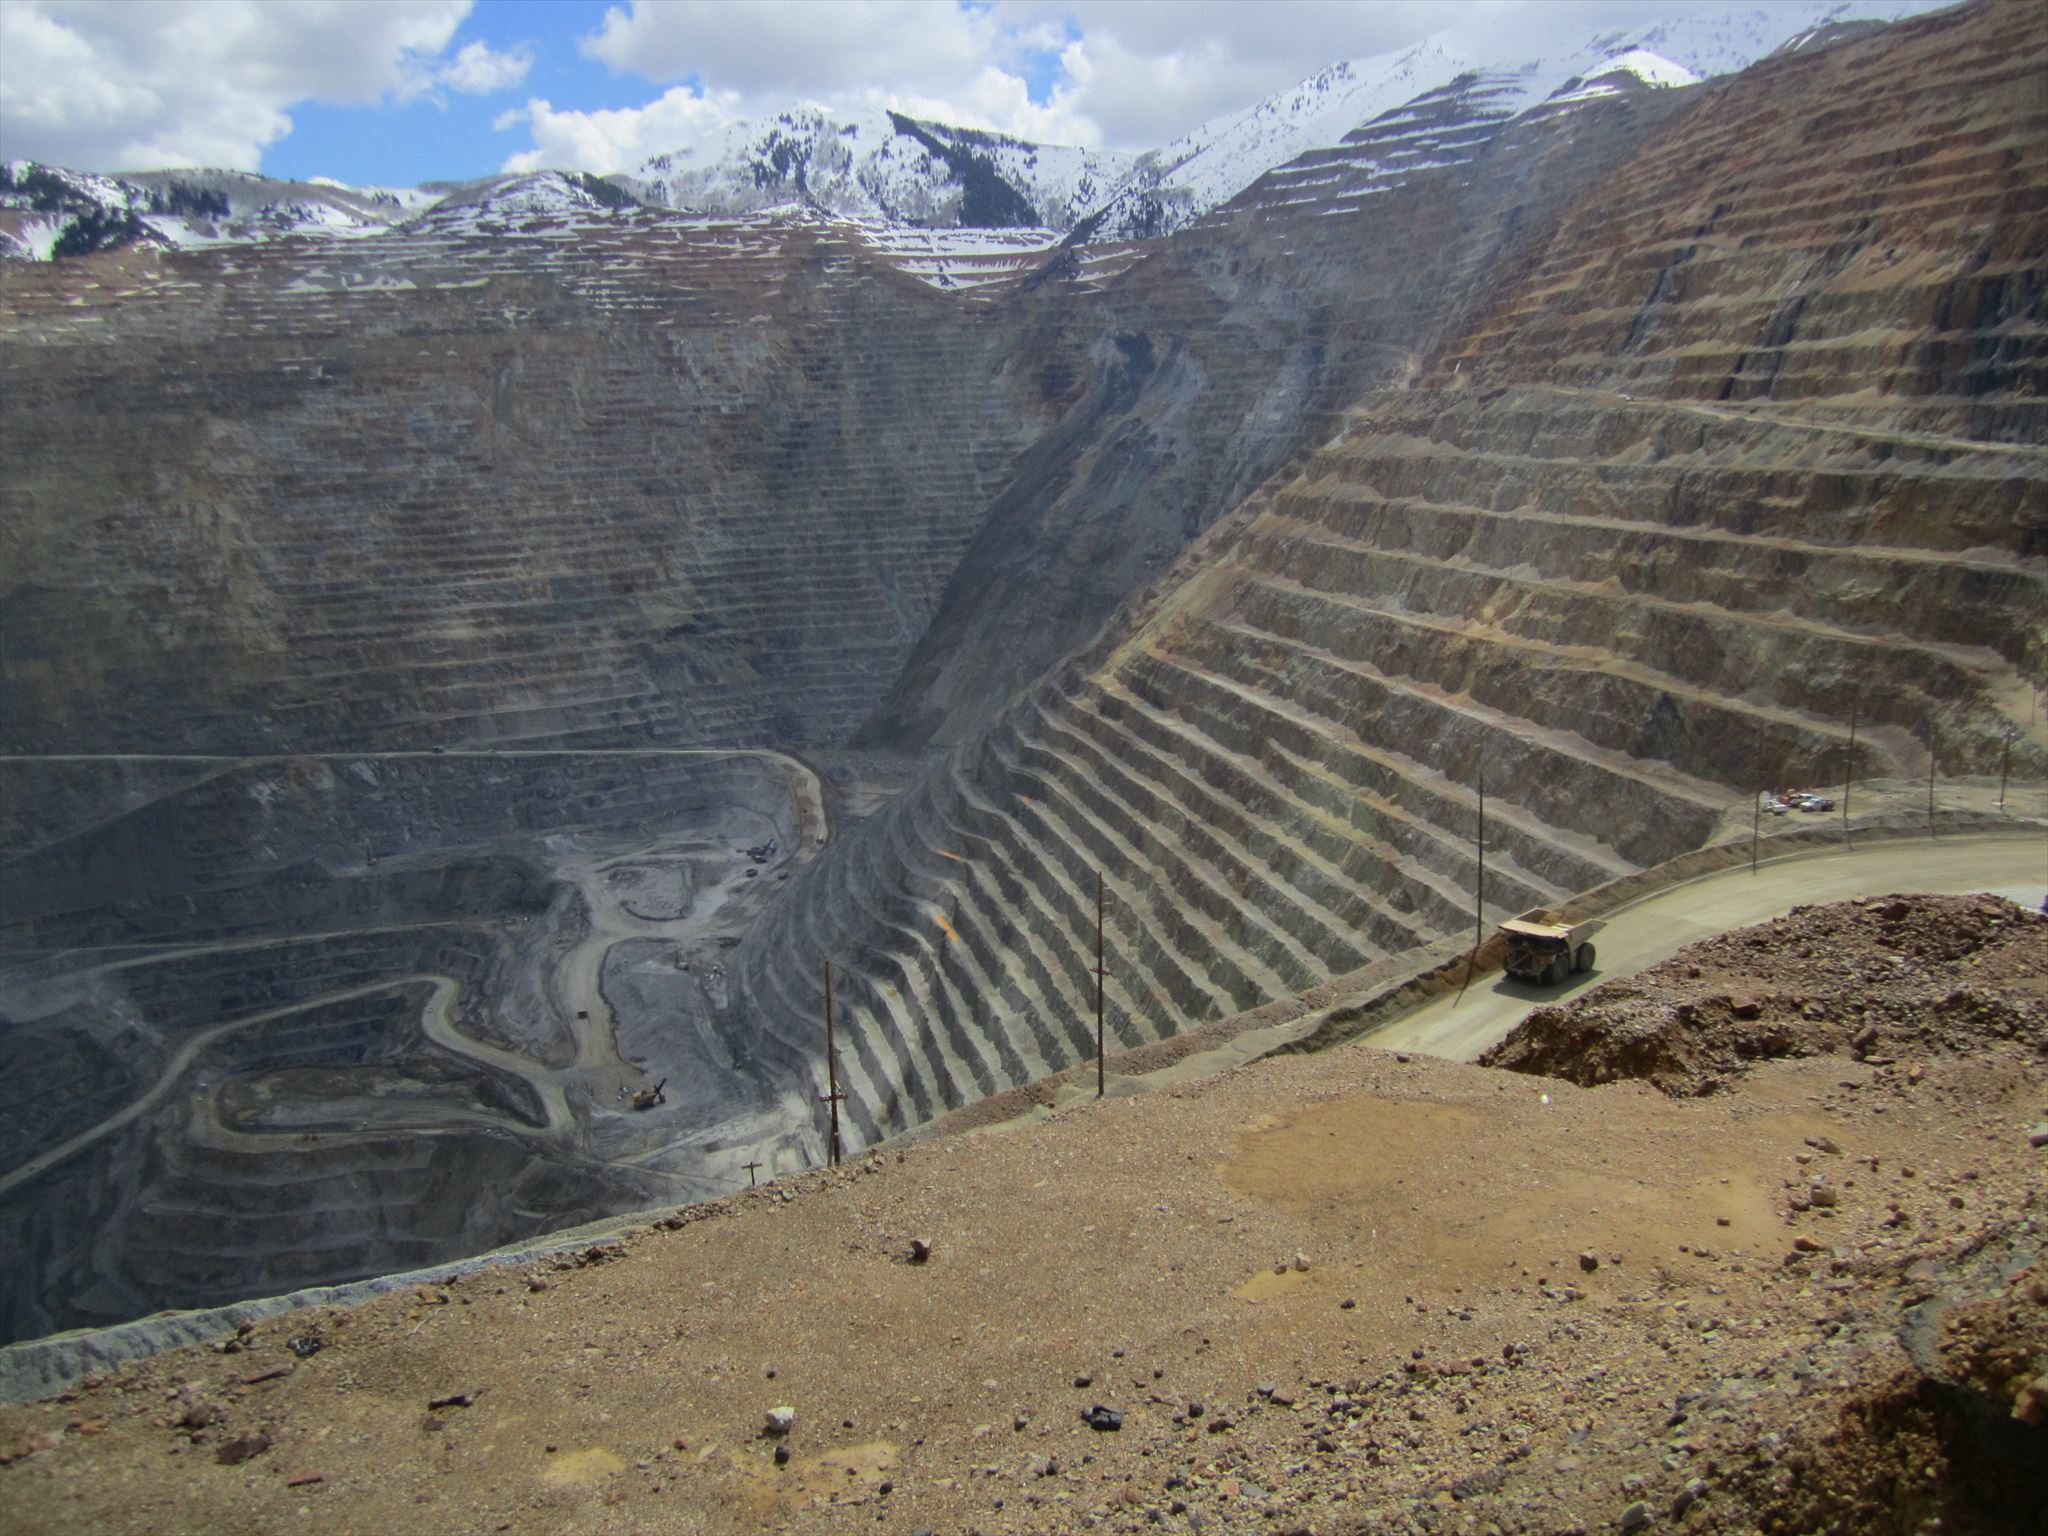 bougainville v rio tinto Rio tinto has walked away from its former jewel in the crown, the panguna coppergold mine on bougainville in papua new guinea.